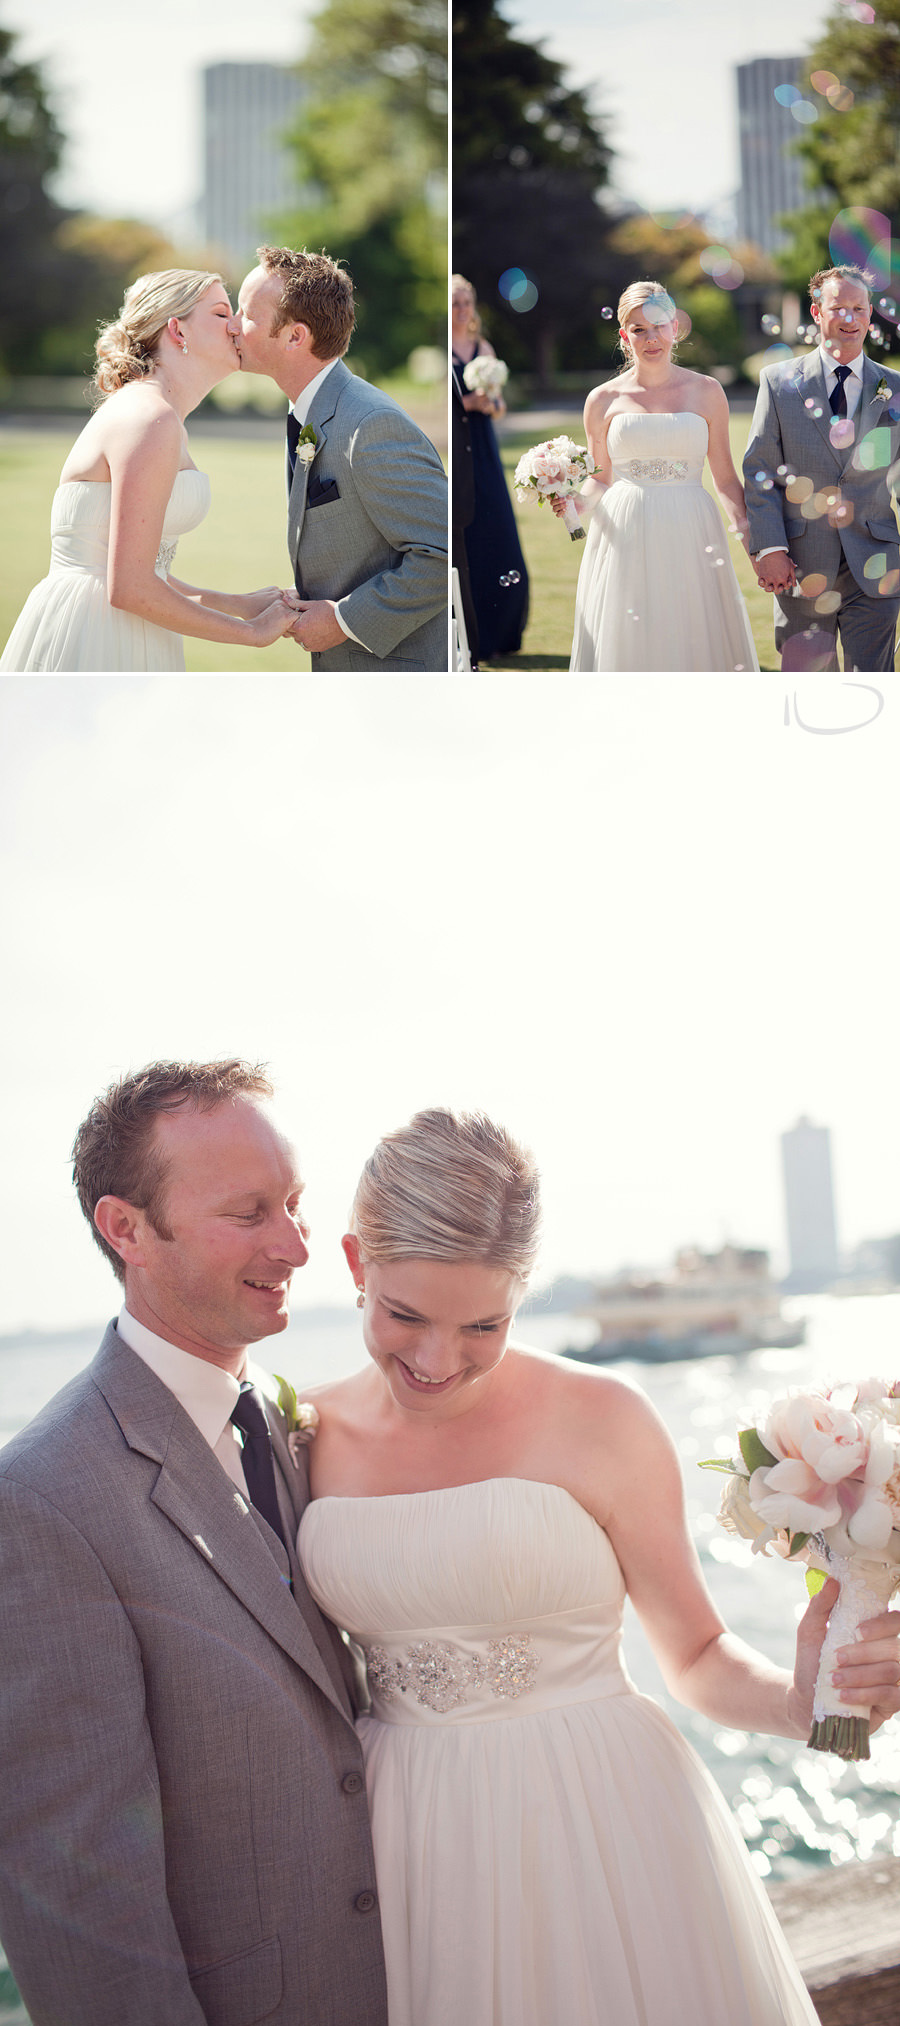 Sydney Wedding Photography: Ceremony first kiss